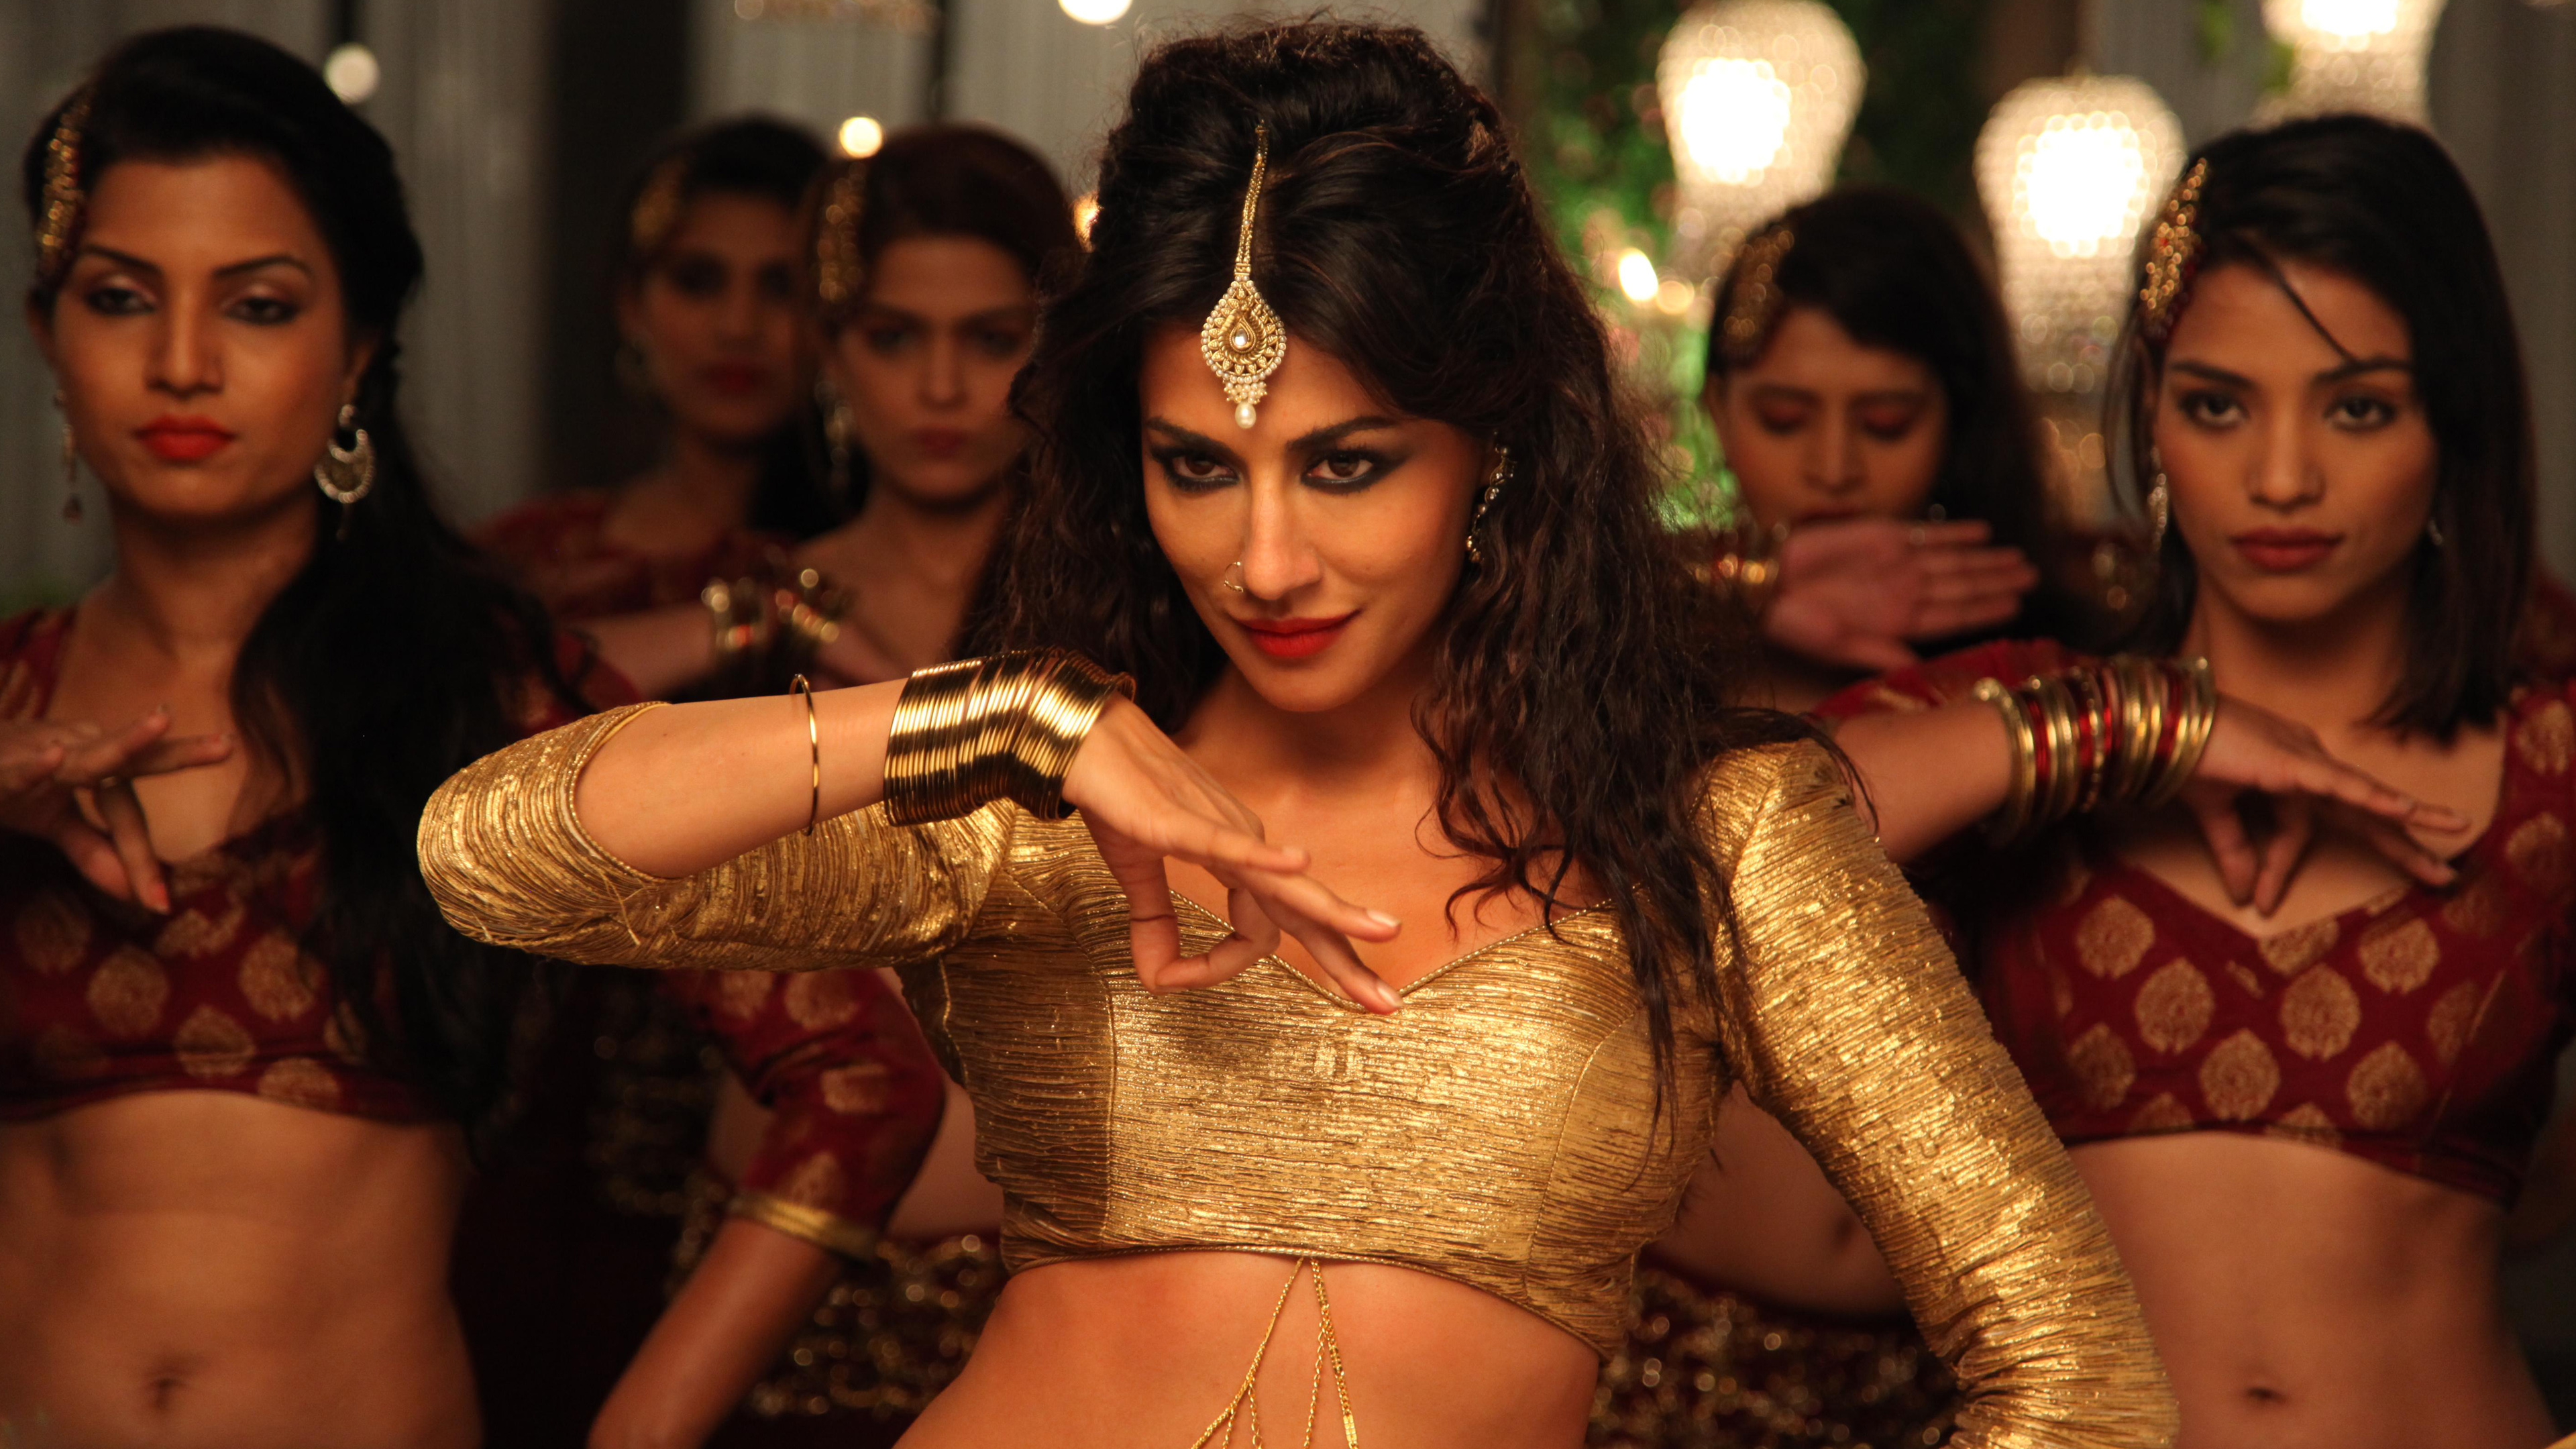 Hot Chitrangda Singh In Aao raja song